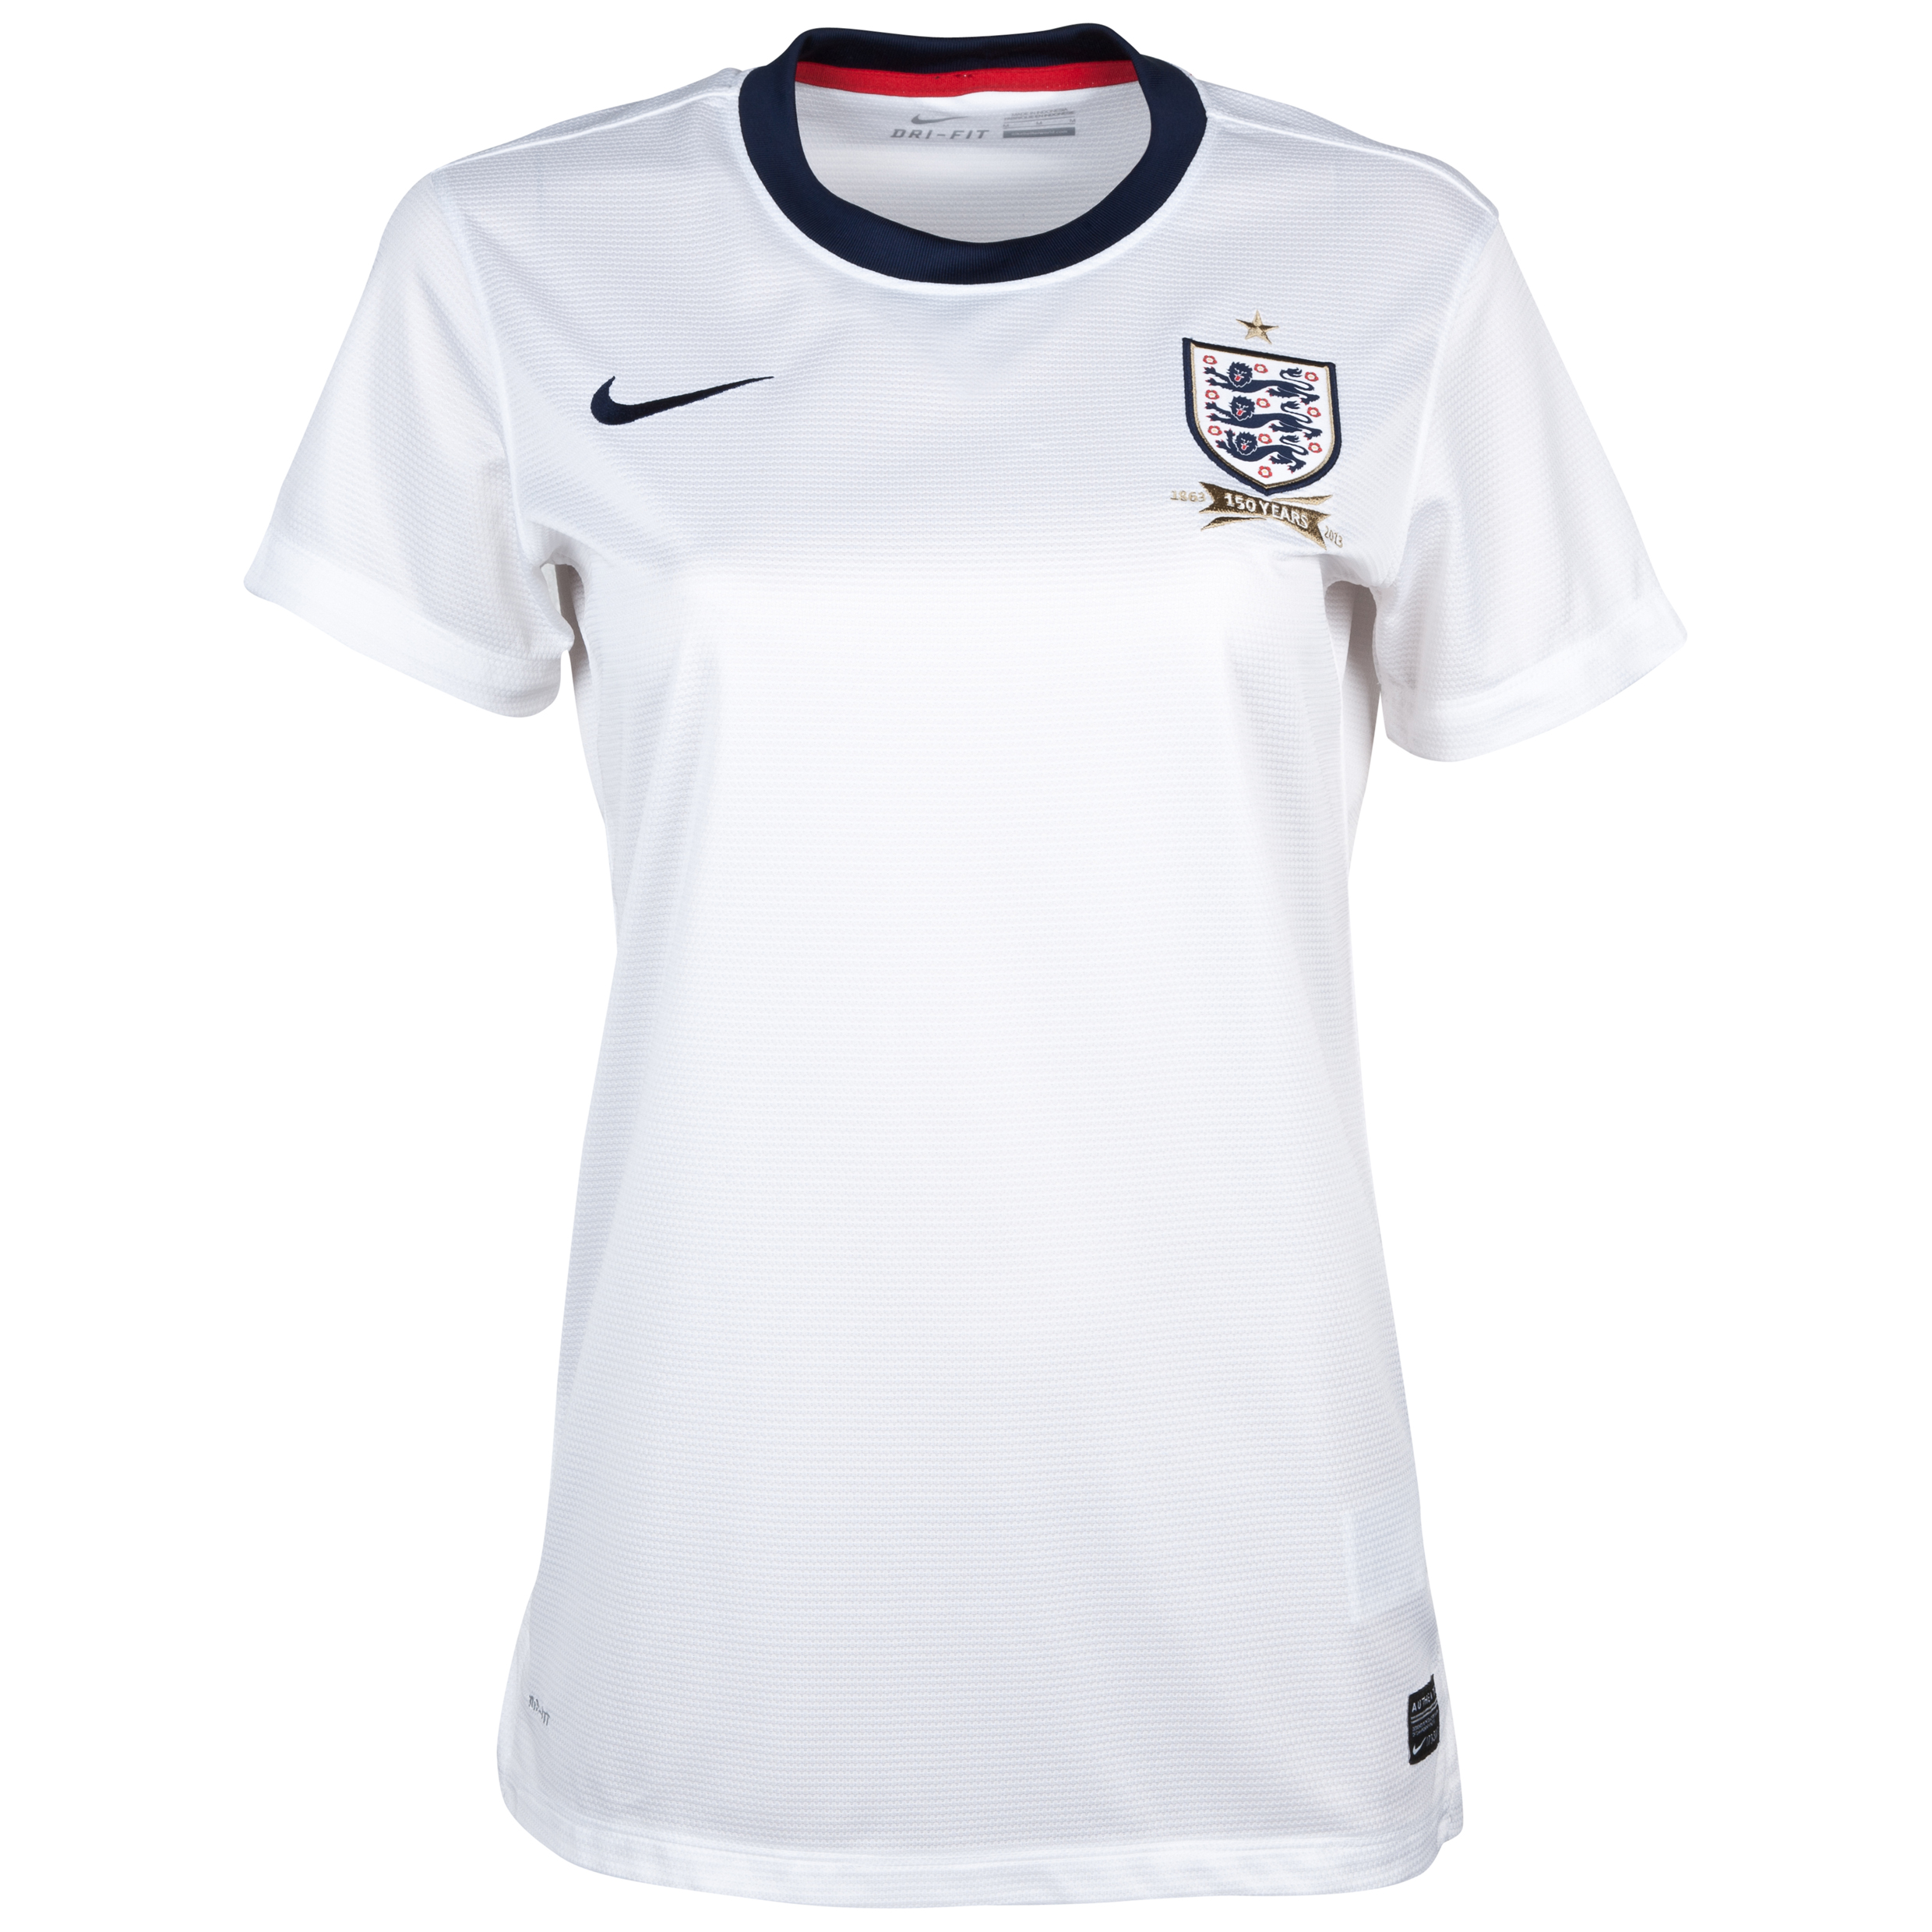 England Home Shirt 2013/14 - Womens White